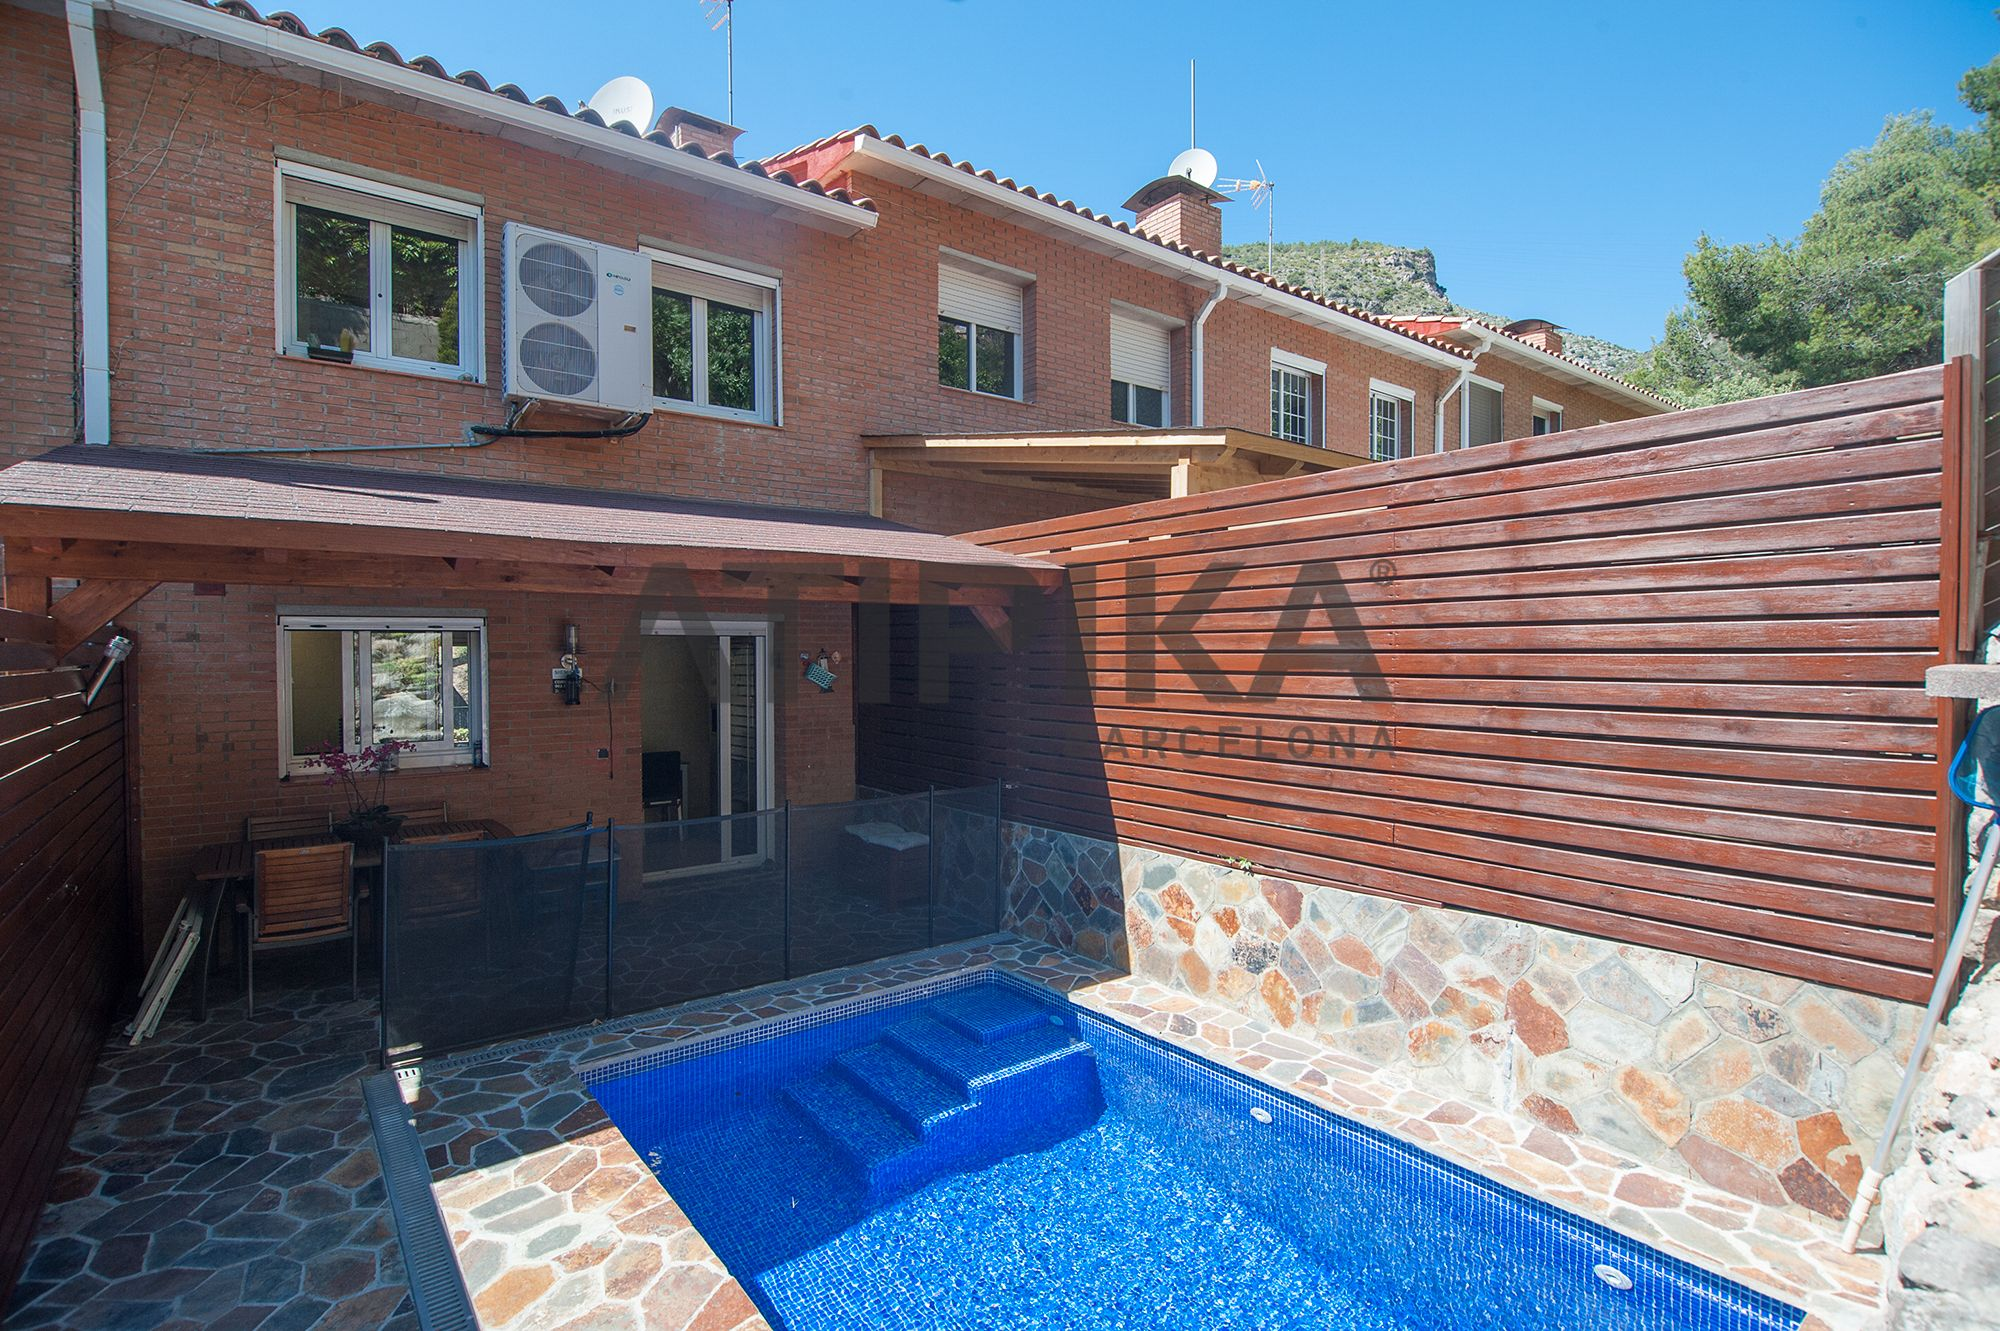 REF. 9561V Semi-detached house with private swiming pool and two terraces of 4m2 each, in Garraf II,Castelldefels for #sale #Castelldefels #BaixLlobregatSud #Barcelona #SeaAtipikaBarcelona #AtipikaBarcelona #AtipikaBcn #RealEstate www.atipika.com